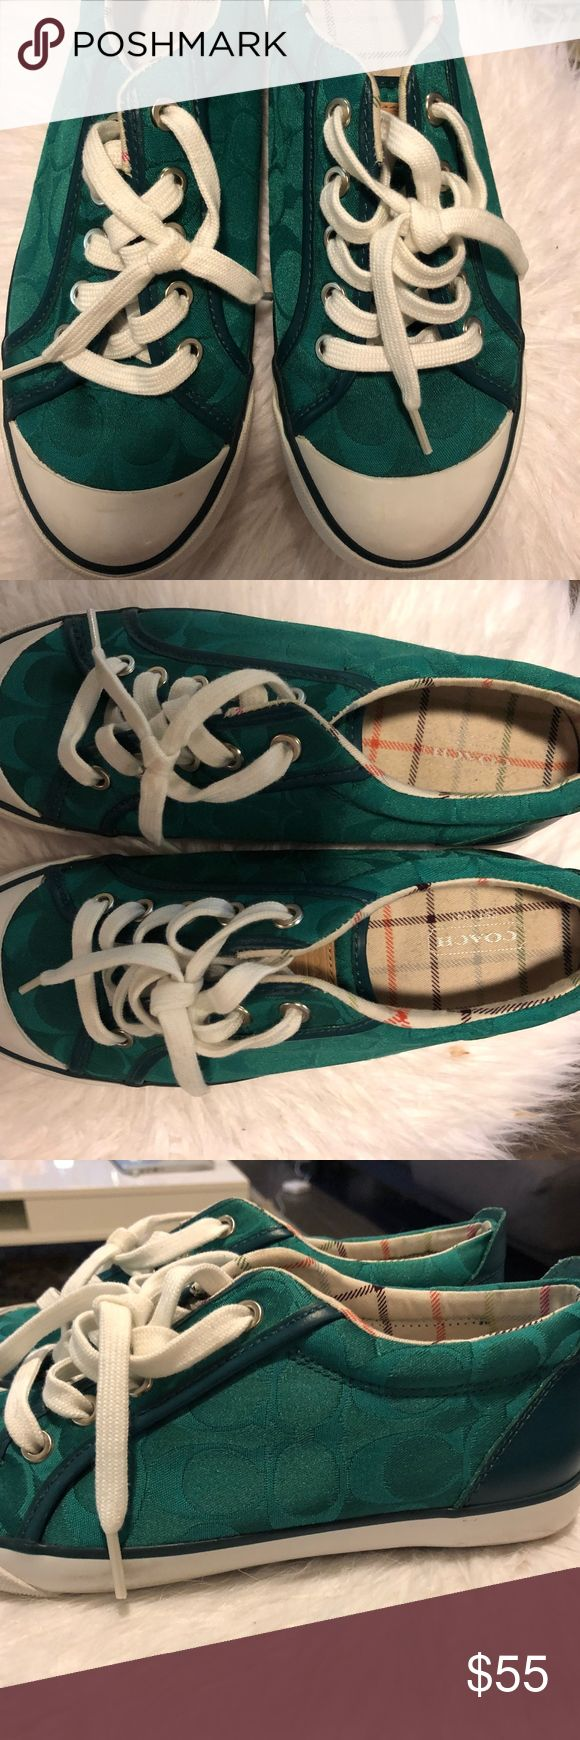 Coach Tennis Shoes Teal / Blue 7.5 Coach Tennis Shoes Teal / Blue size 7.5 minor scratches on sole that you can see in pictures but it VERY good condition! Coach Shoes Athletic Shoes